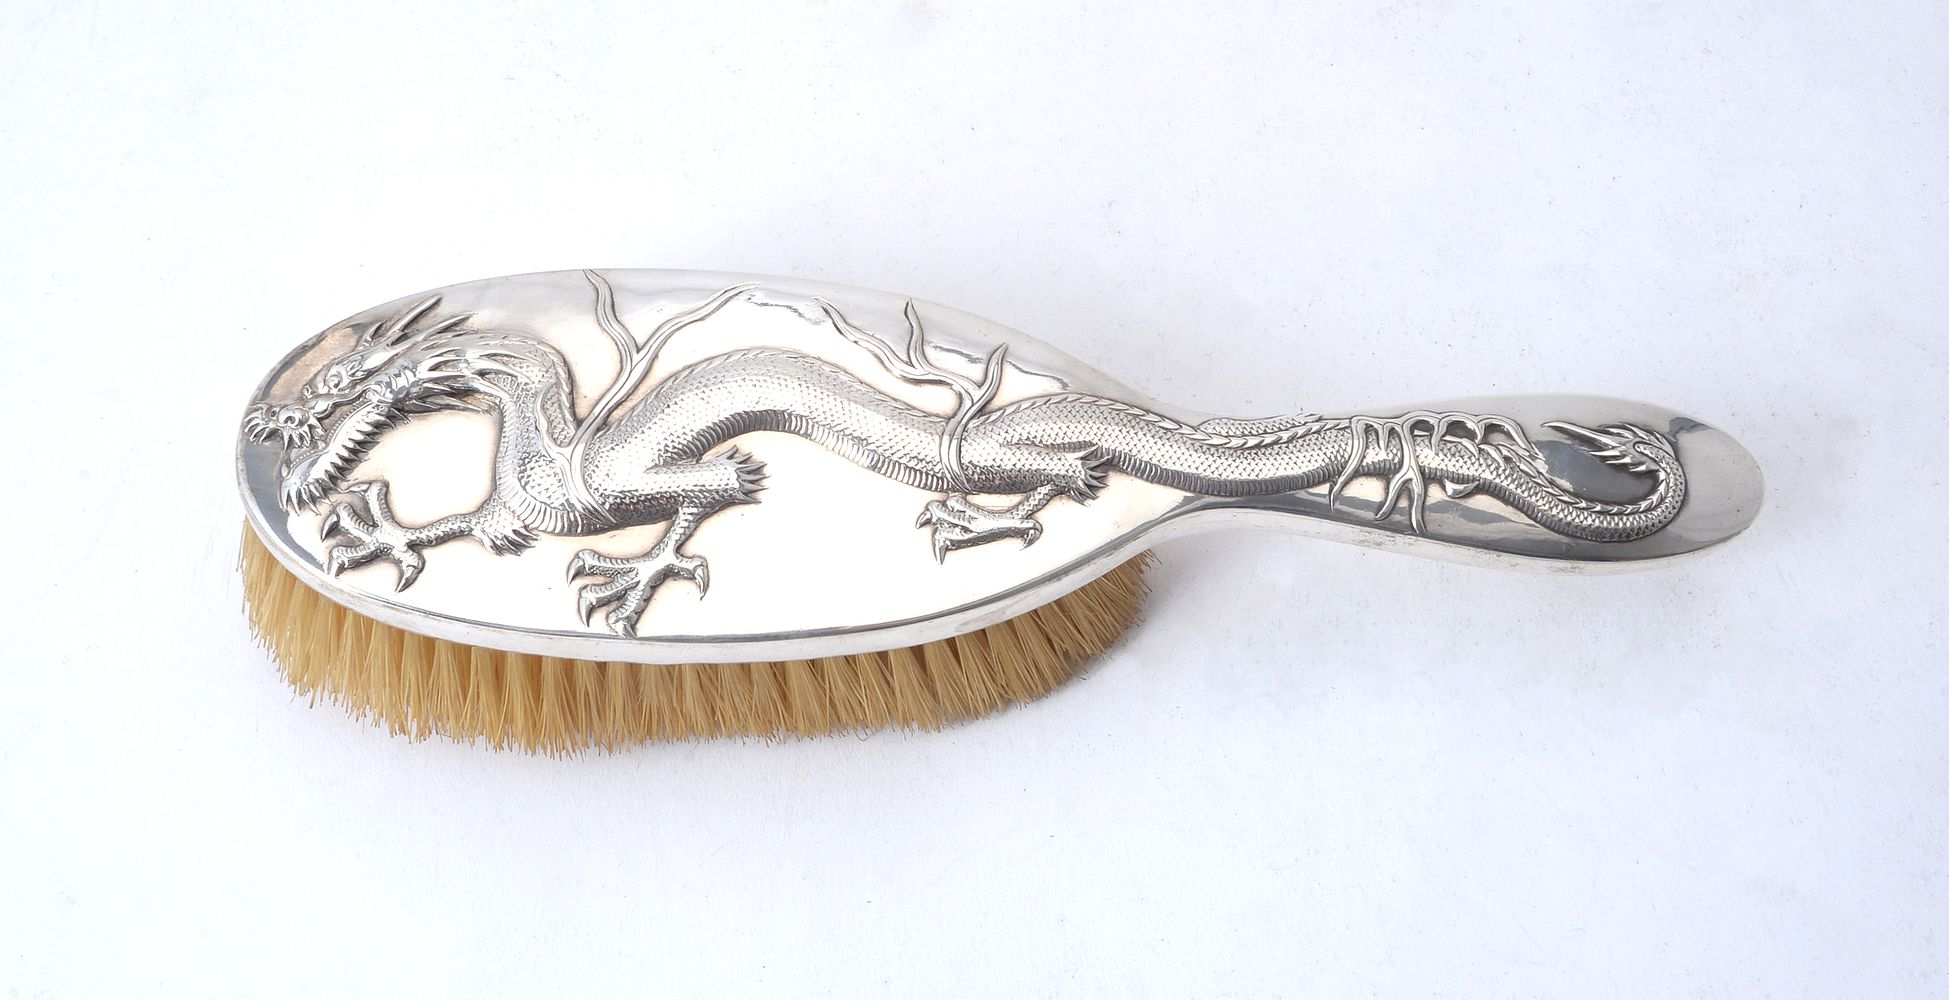 Lot 688 - A Chinese export silver hair brush by Wang Hing & Co.